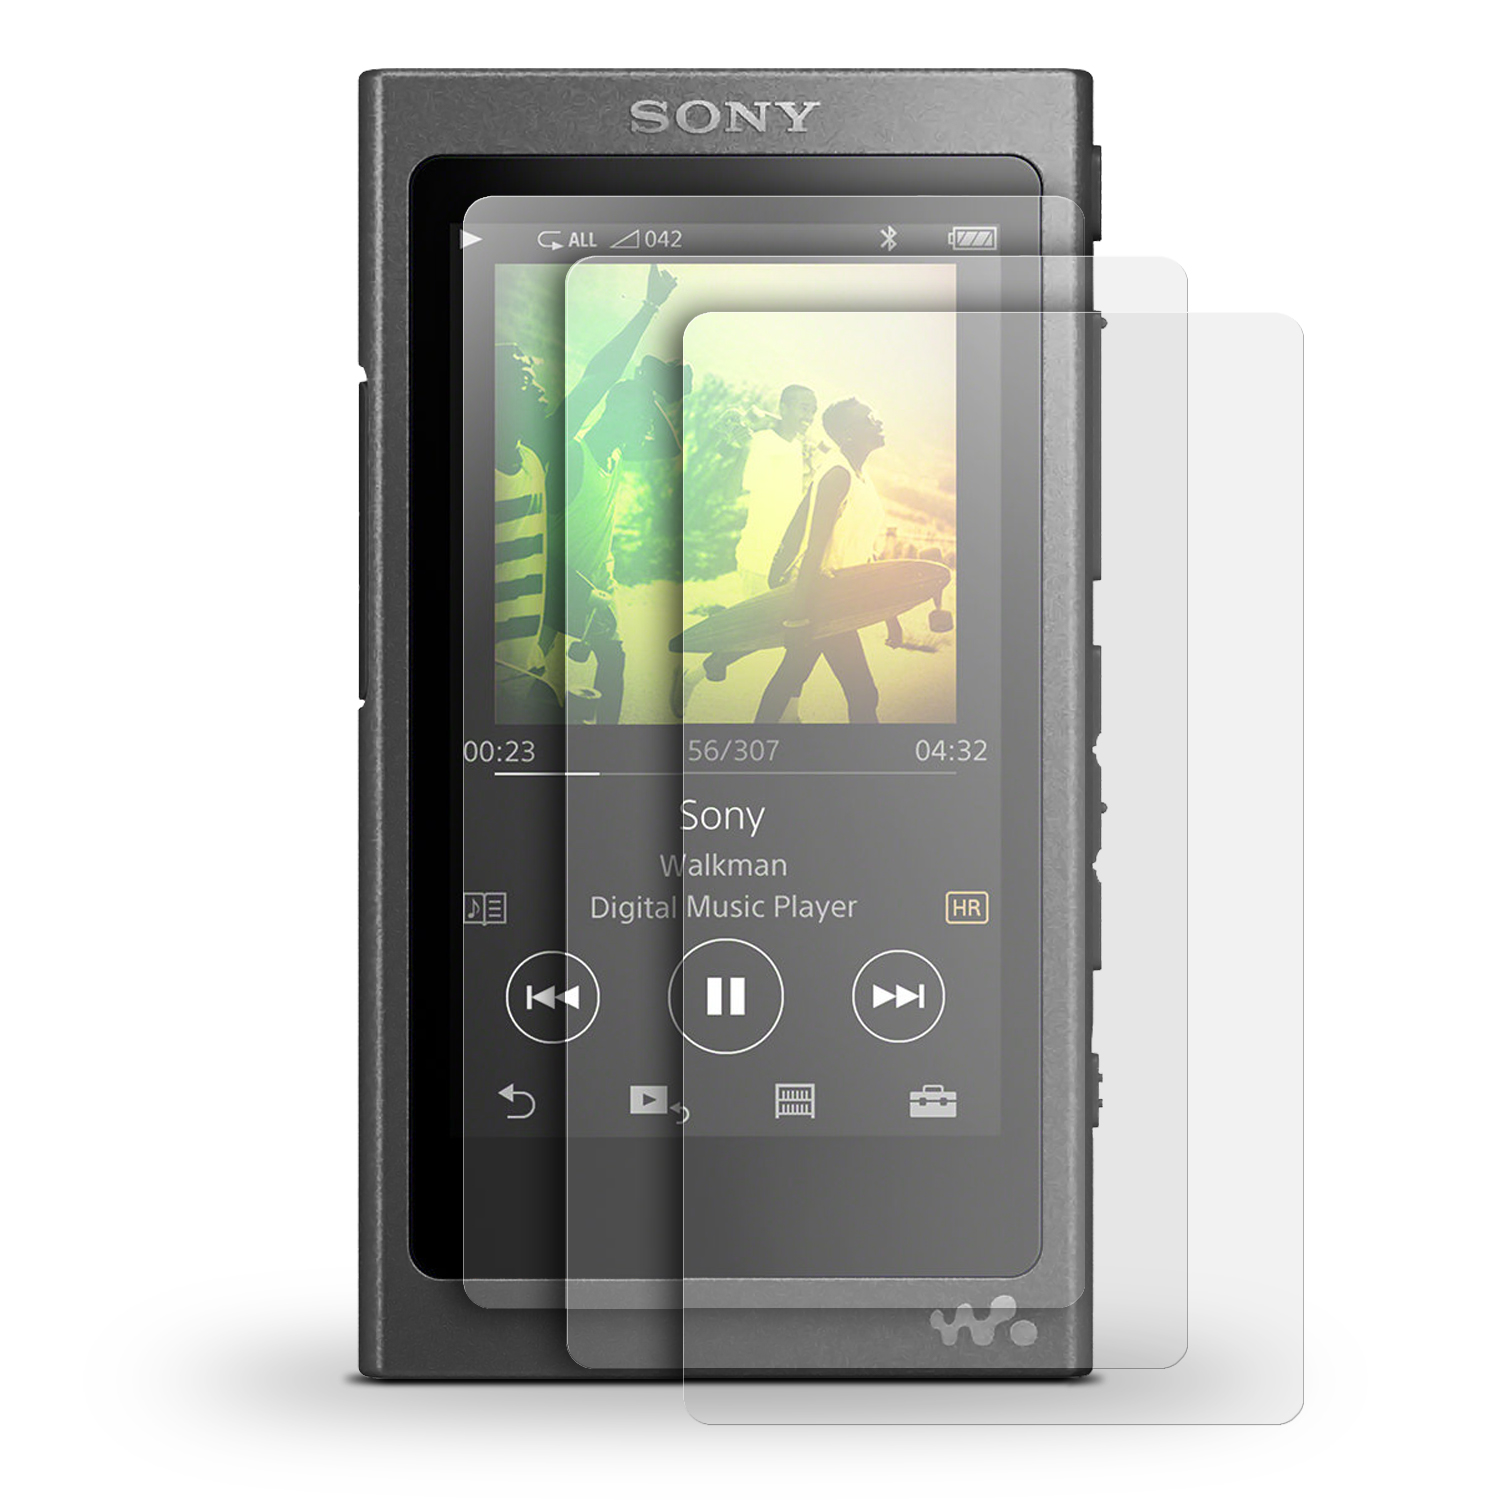 iGadgitz 3x Pack of Screen Protector for Sony Walkman NW-A35 NW-A40 MP3 Player Clear Protective Film